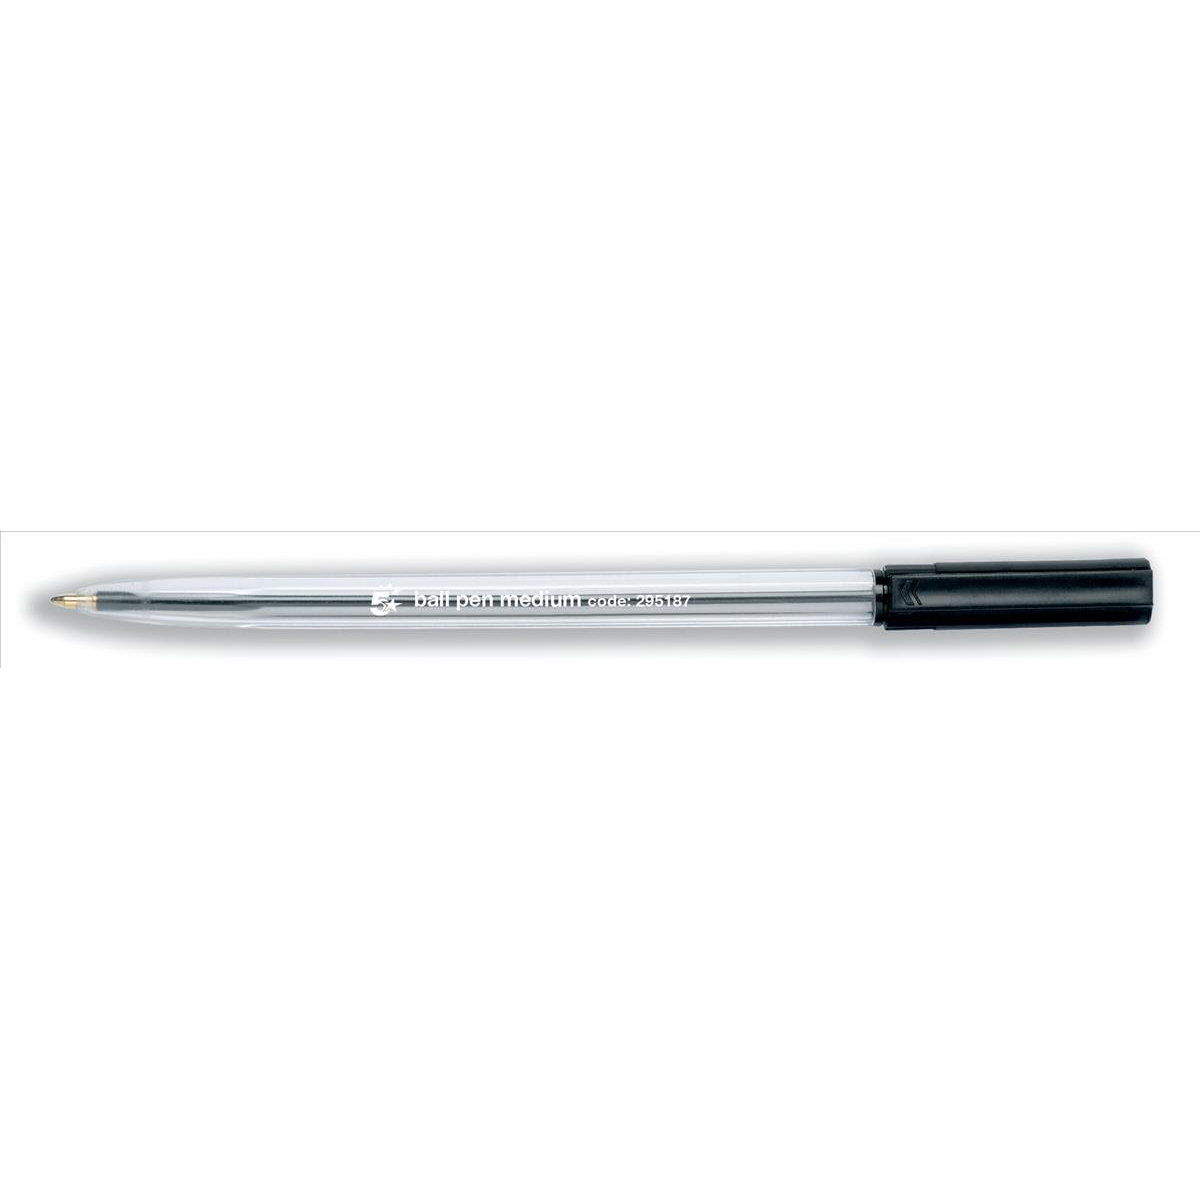 5 Star Office Ball Pen Clear Barrel Medium 1.0mm Tip 0.7mm Line Black [Pack 50]